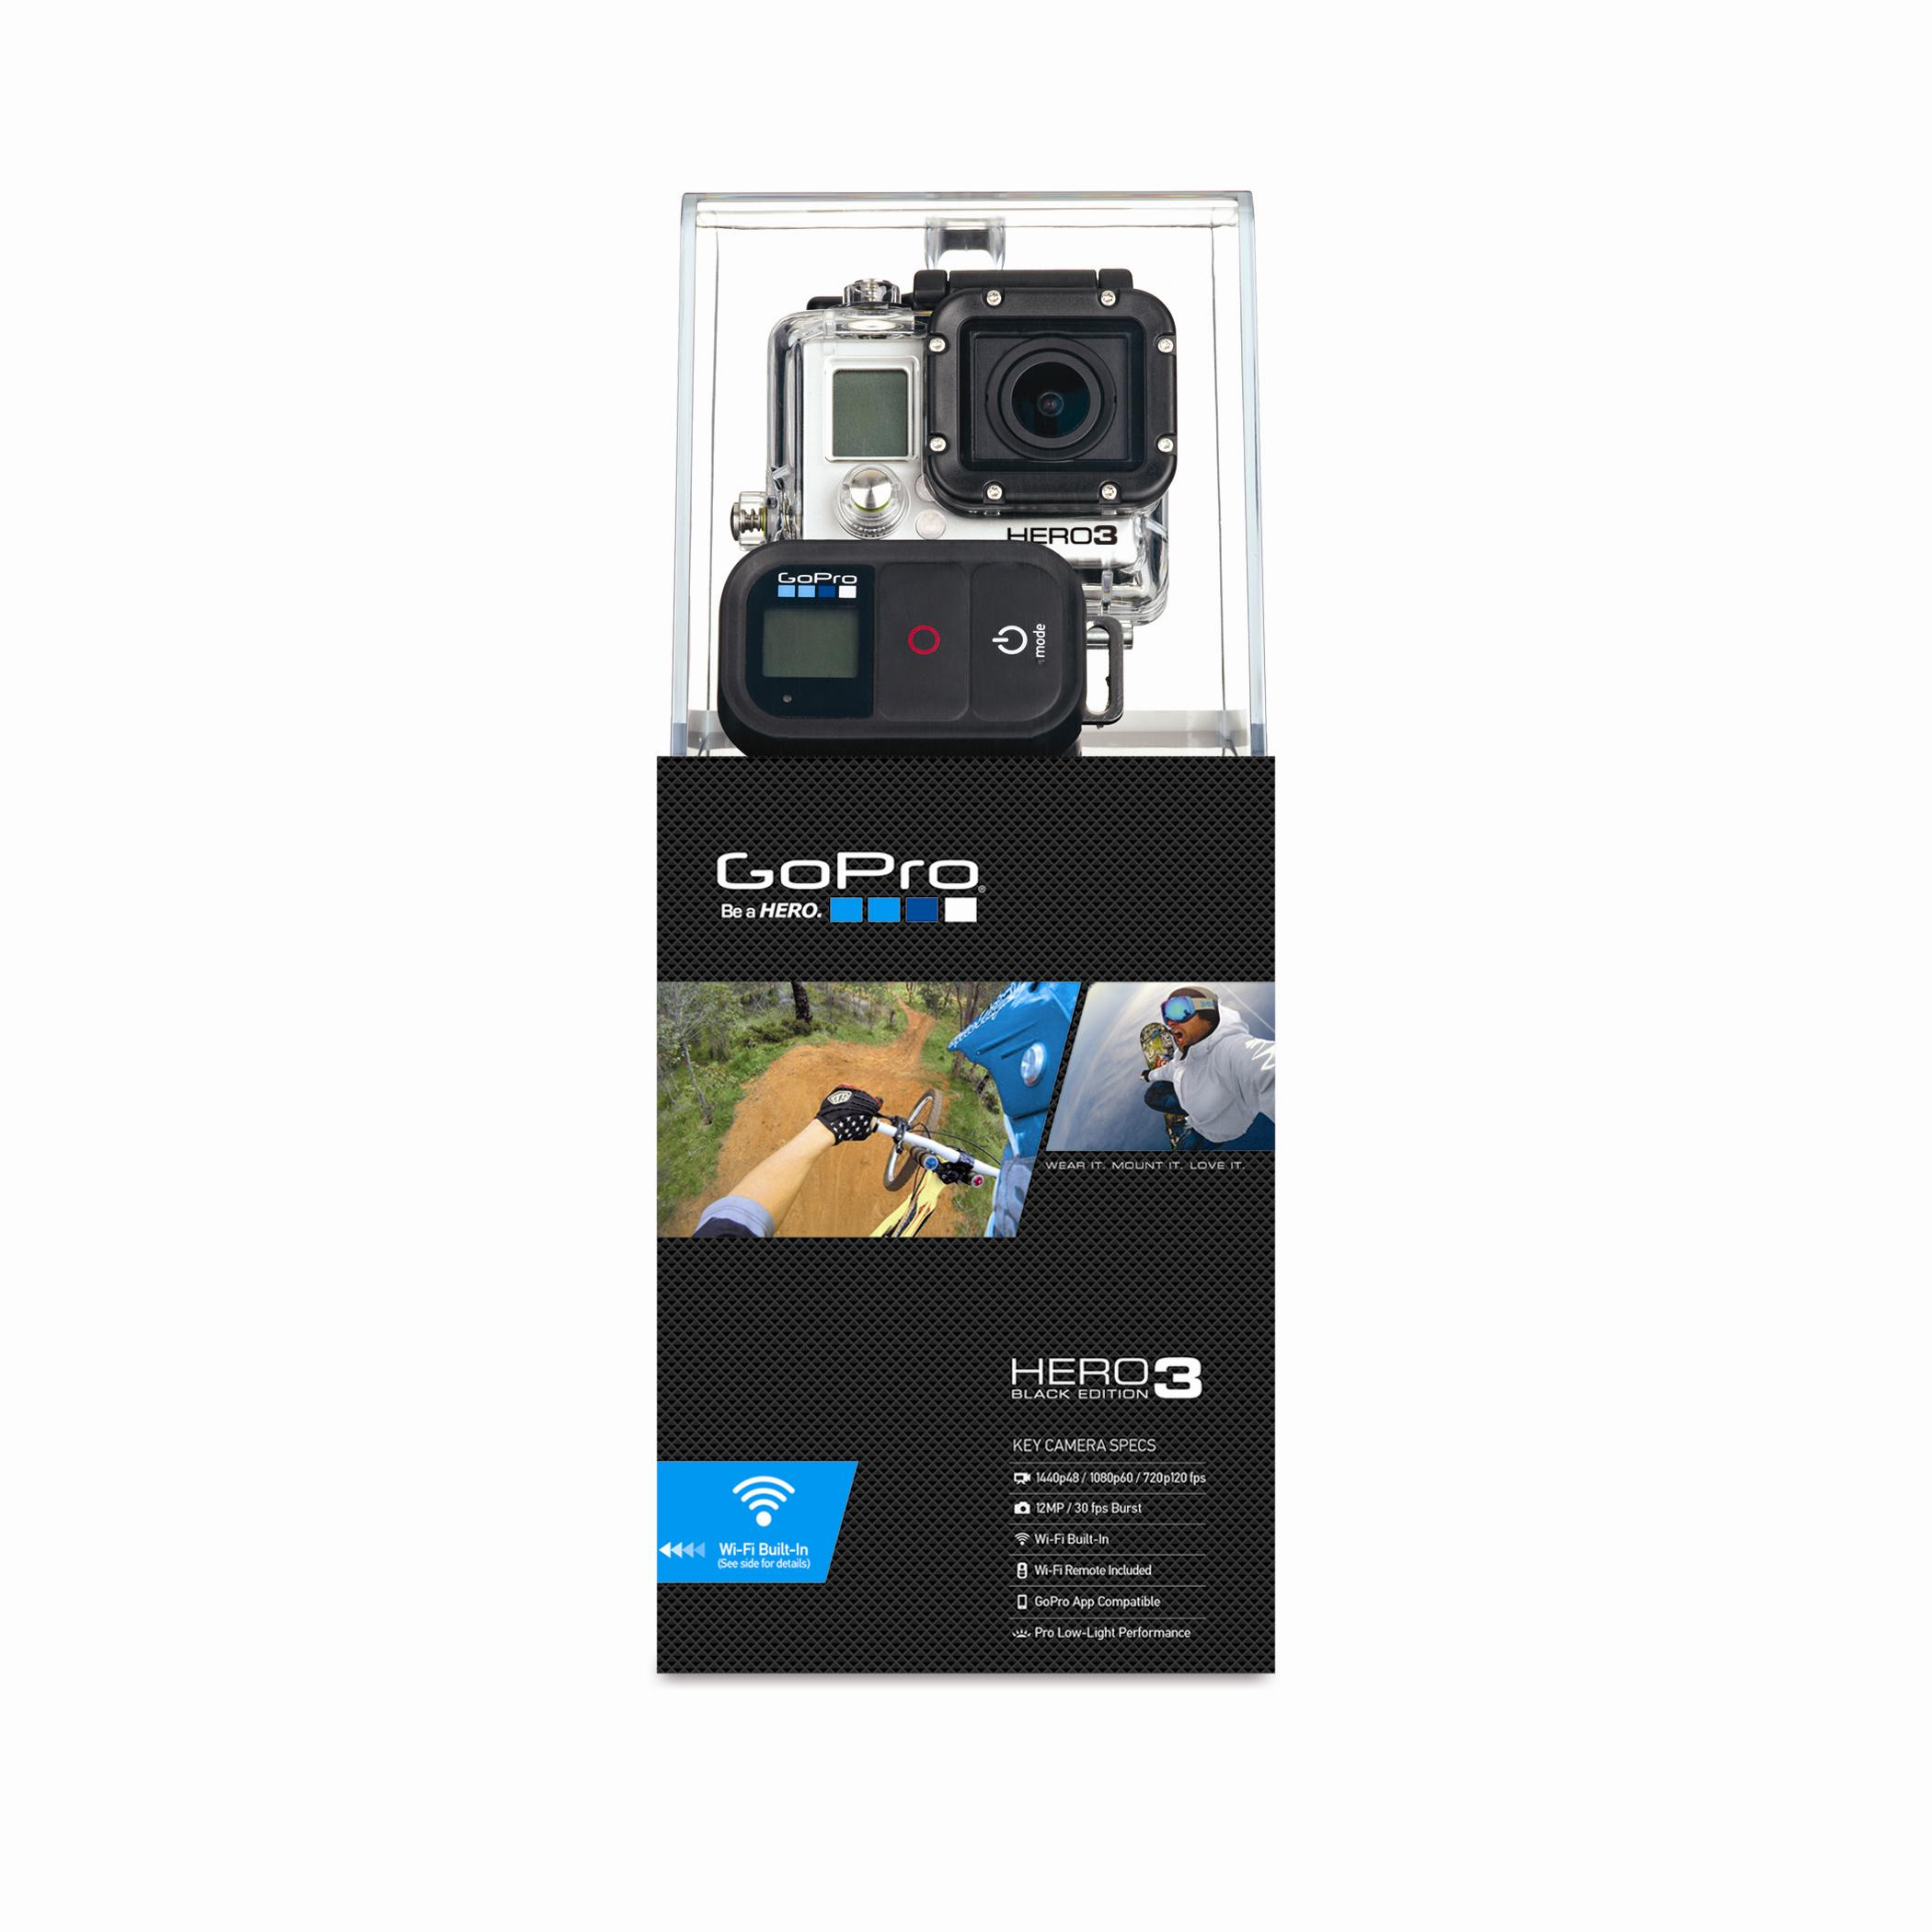 gopro hd hero 3 black edition extreme spearfishing. Black Bedroom Furniture Sets. Home Design Ideas